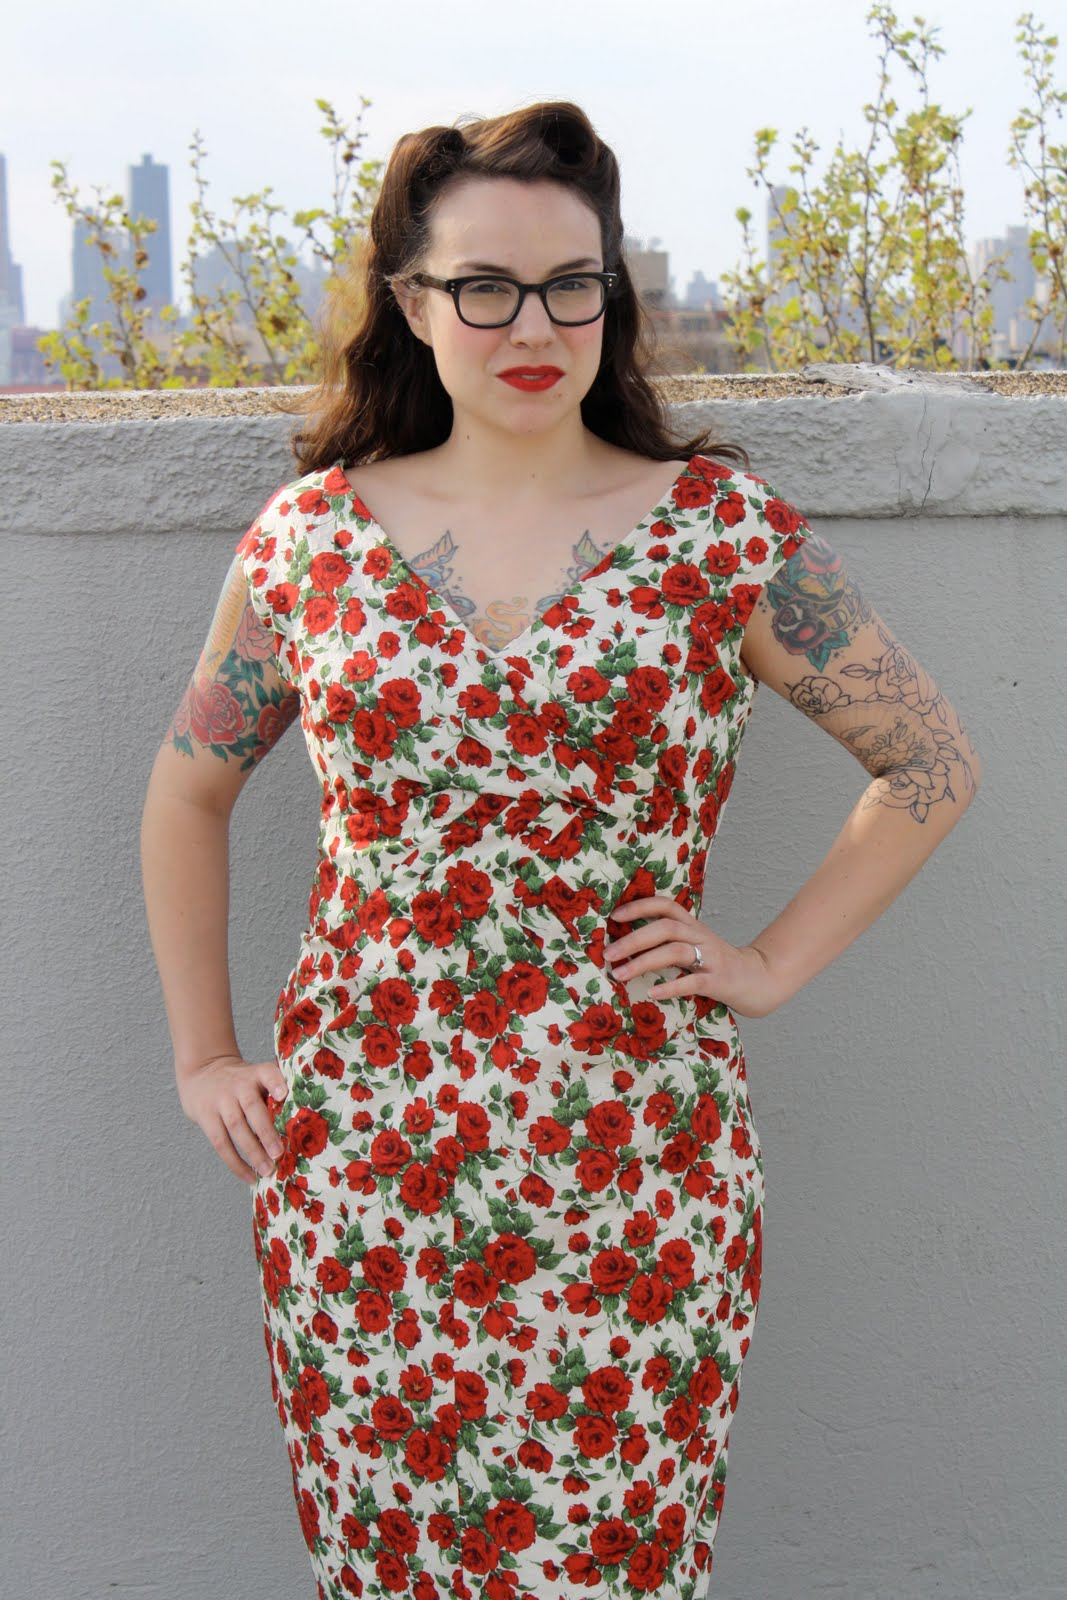 Roses Are Red: The Ceil Chapman Tribute Dress